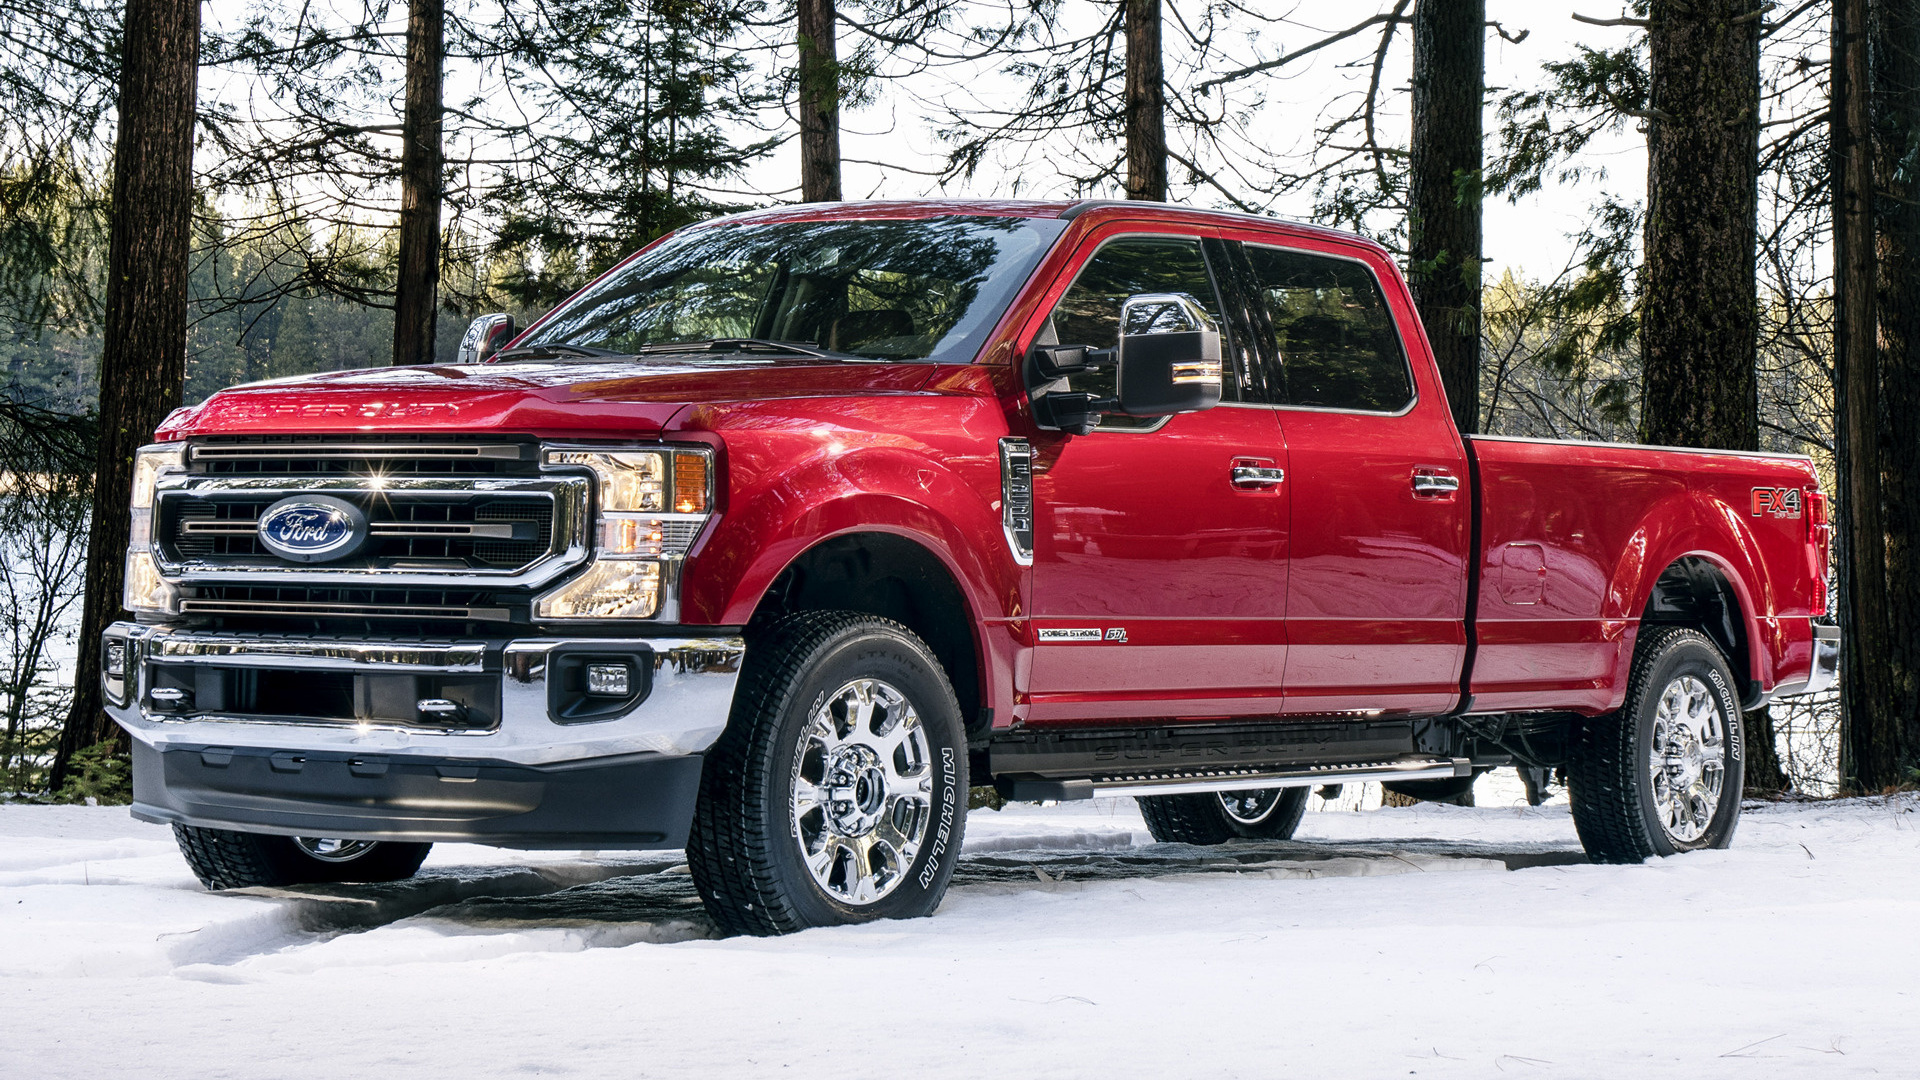 2018 Ford F350 >> 2020 Ford F-250 Super Duty King Ranch Crew Cab FX4 Package ...